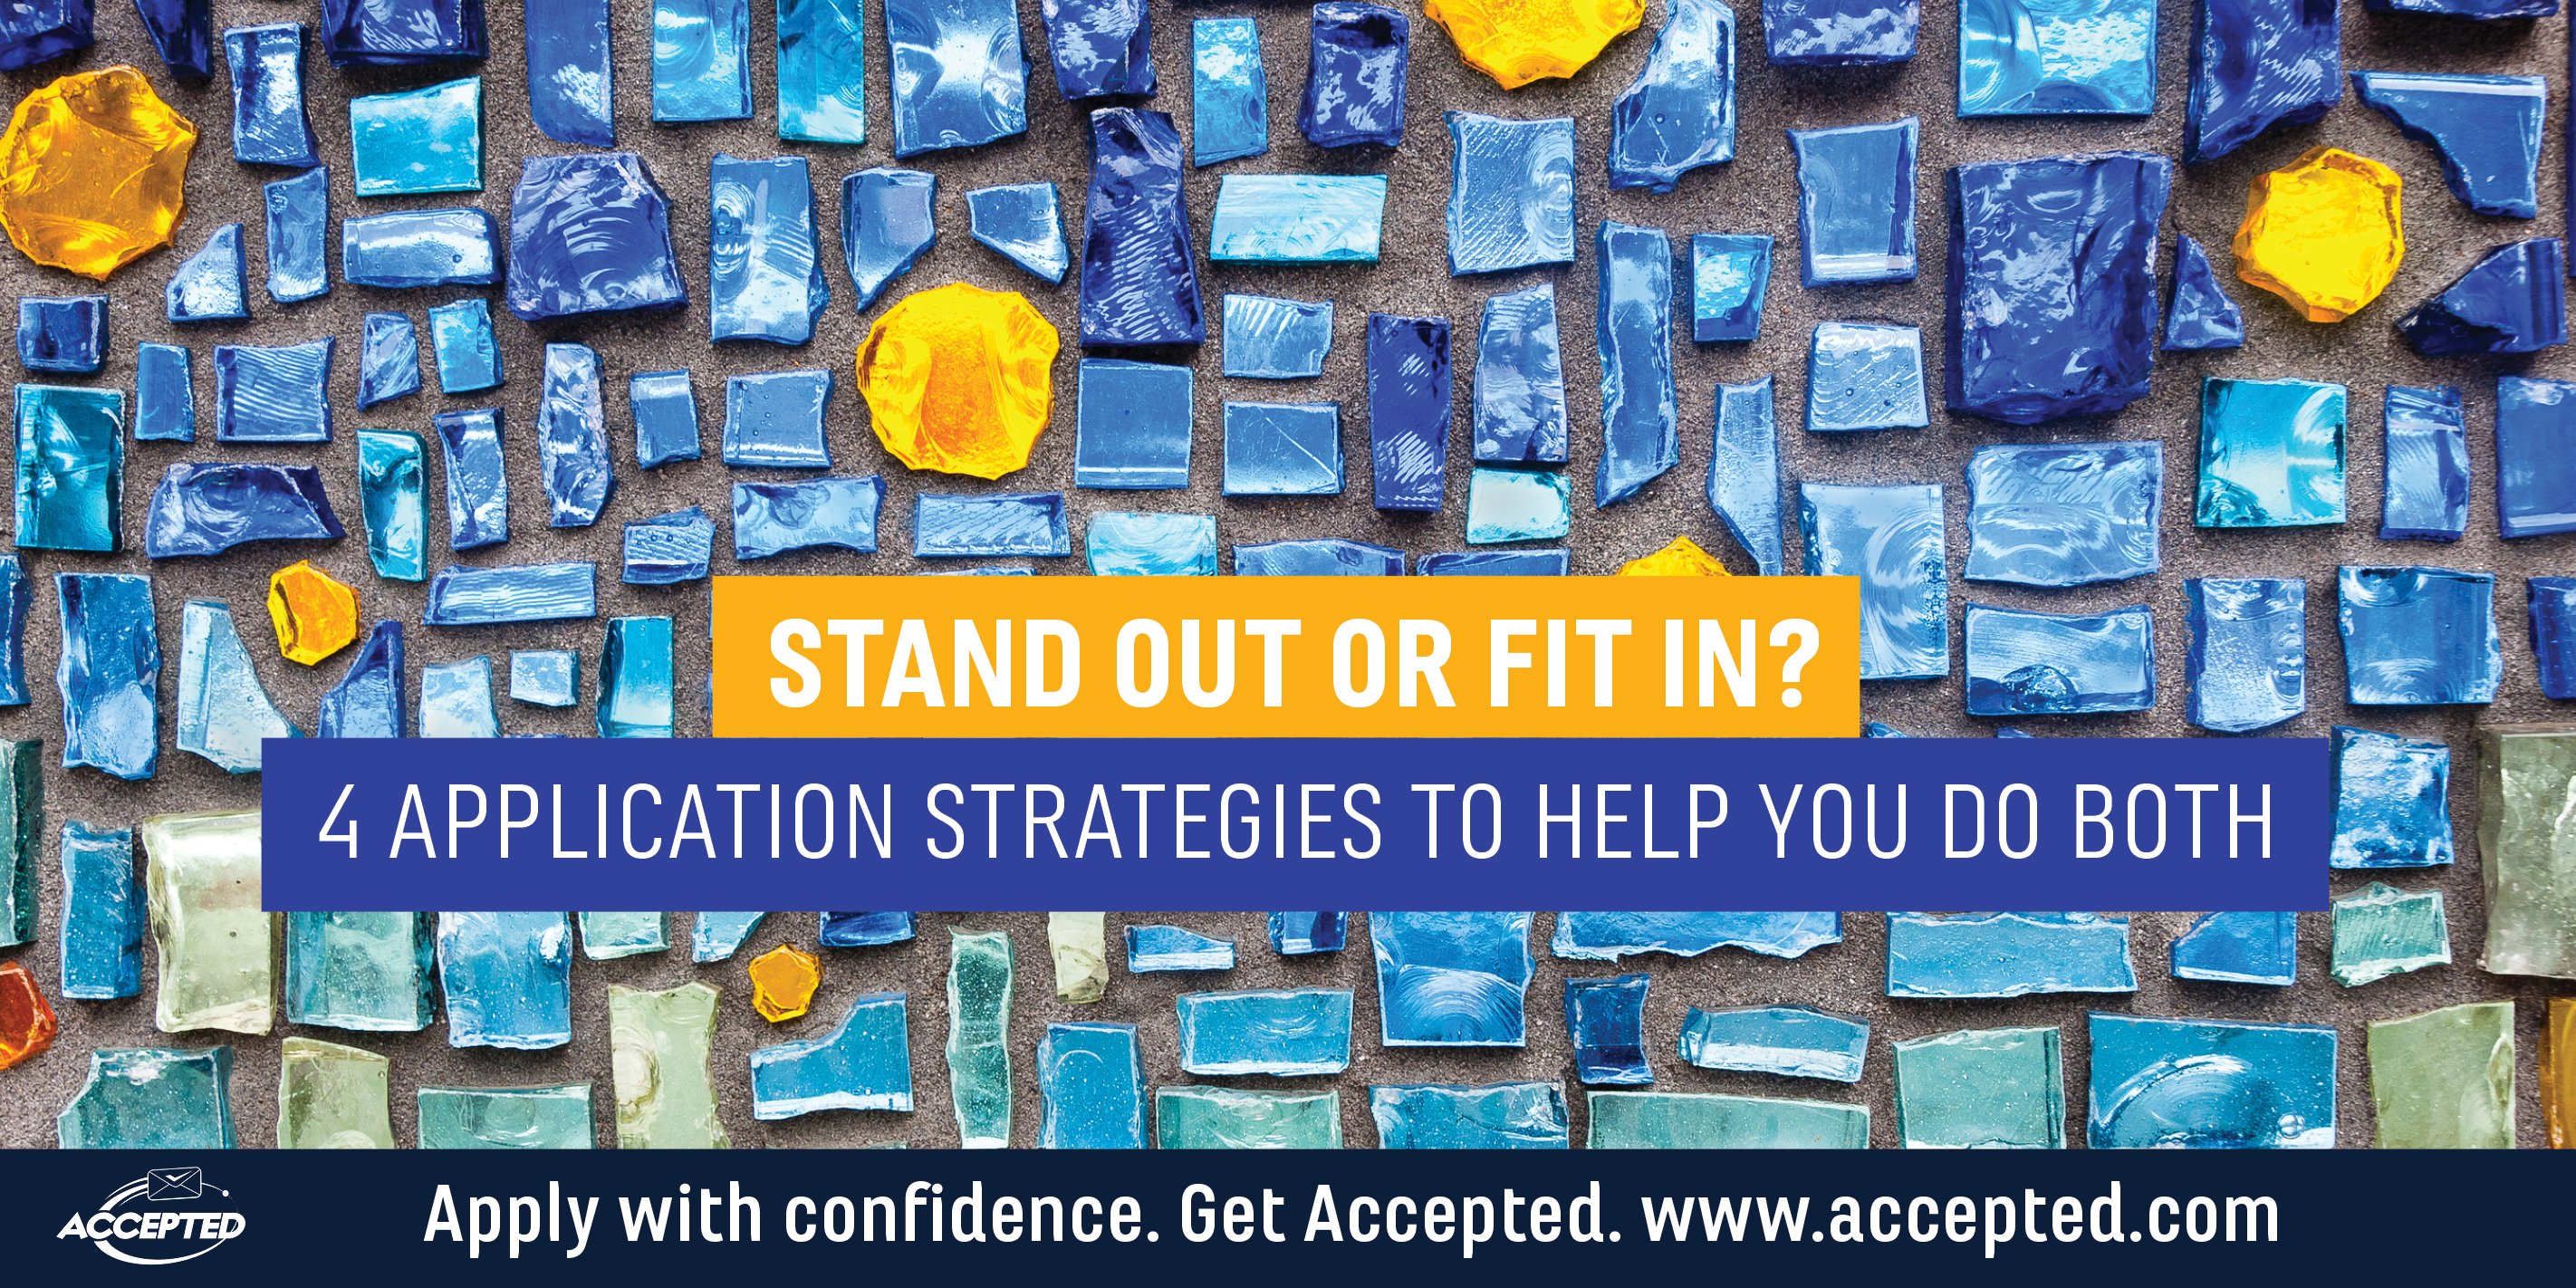 Stand out or fit in application strategy tips